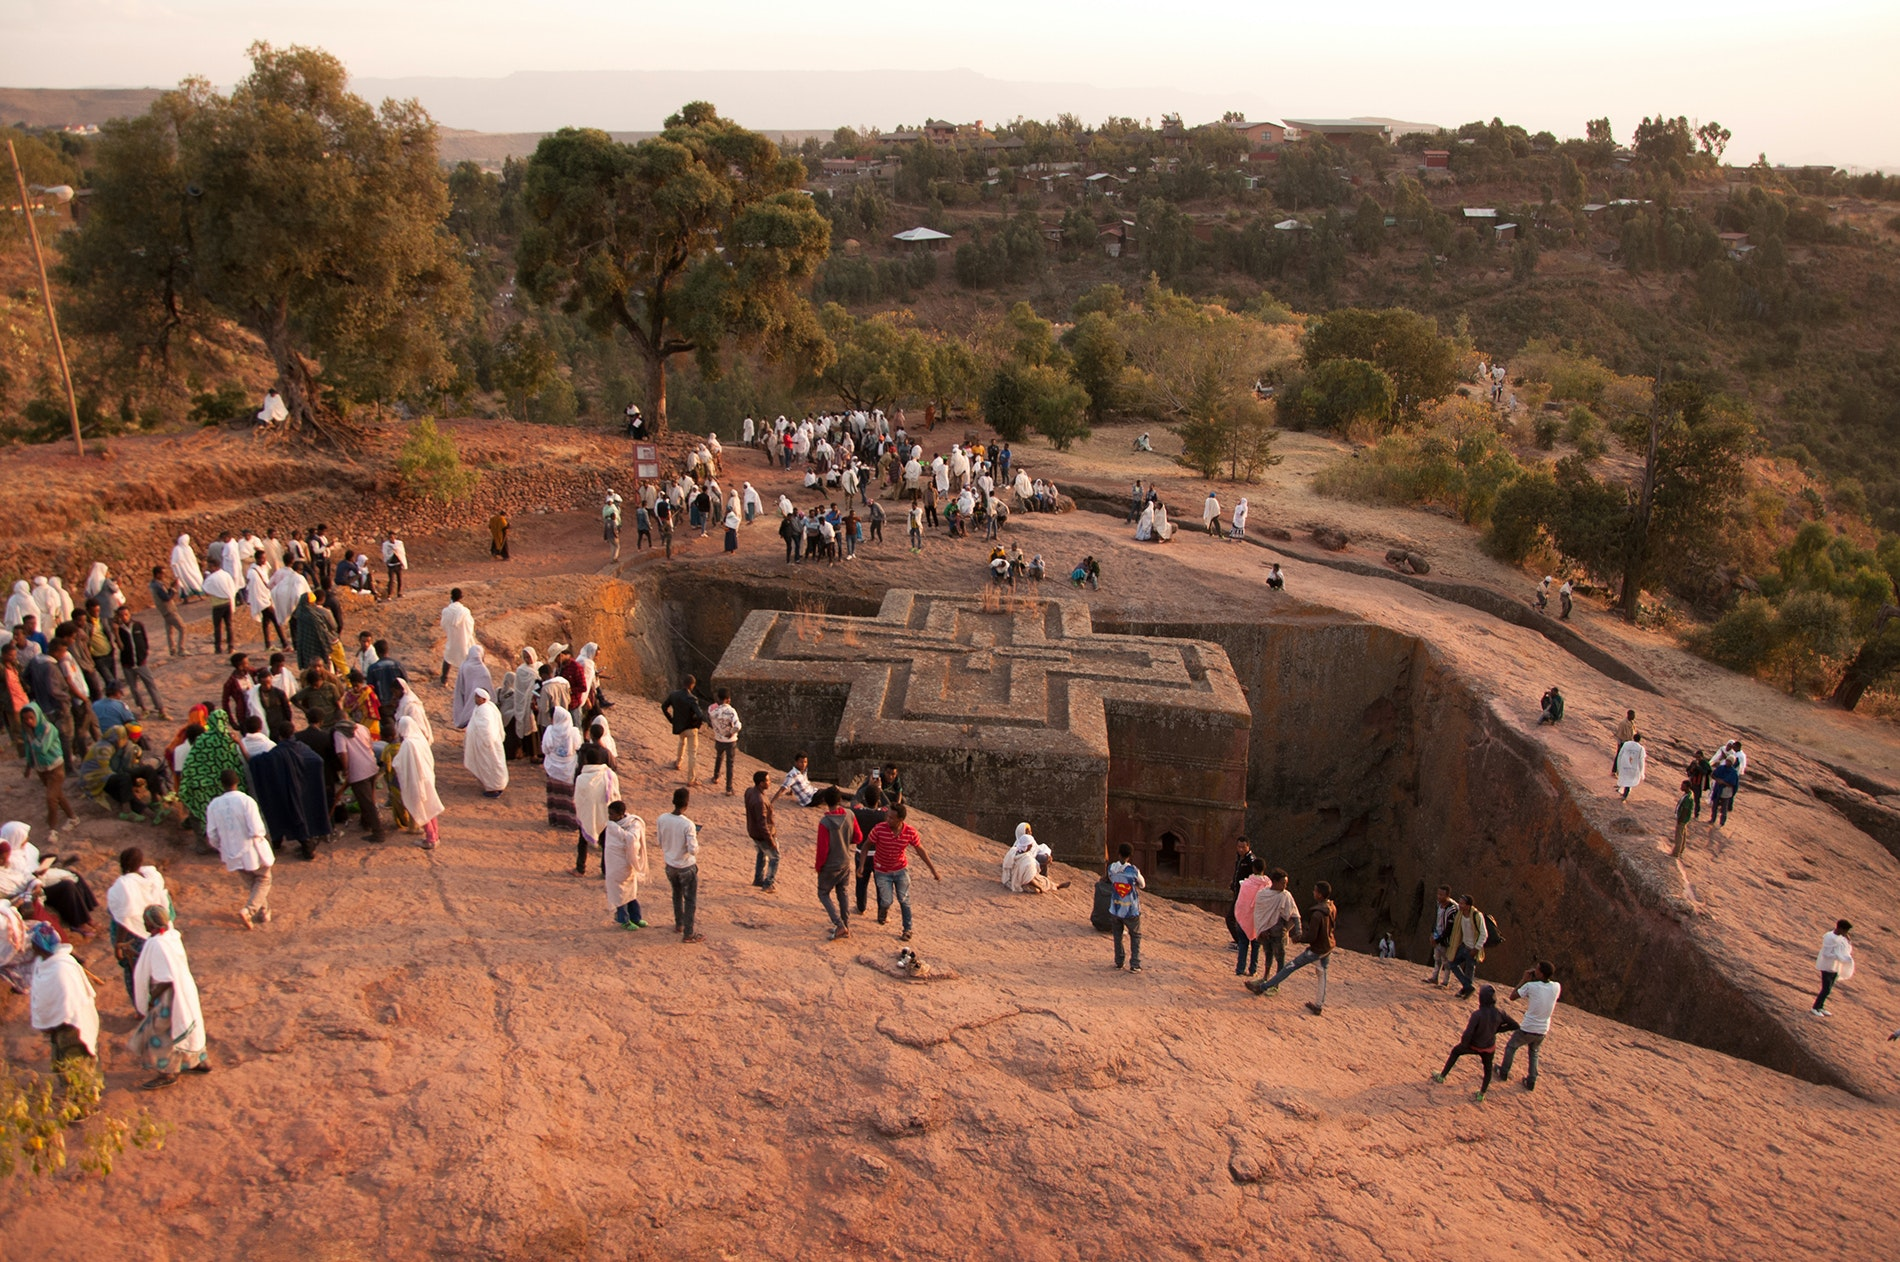 Lalibela is famous for its unusual rock-hewn, below-ground churches.